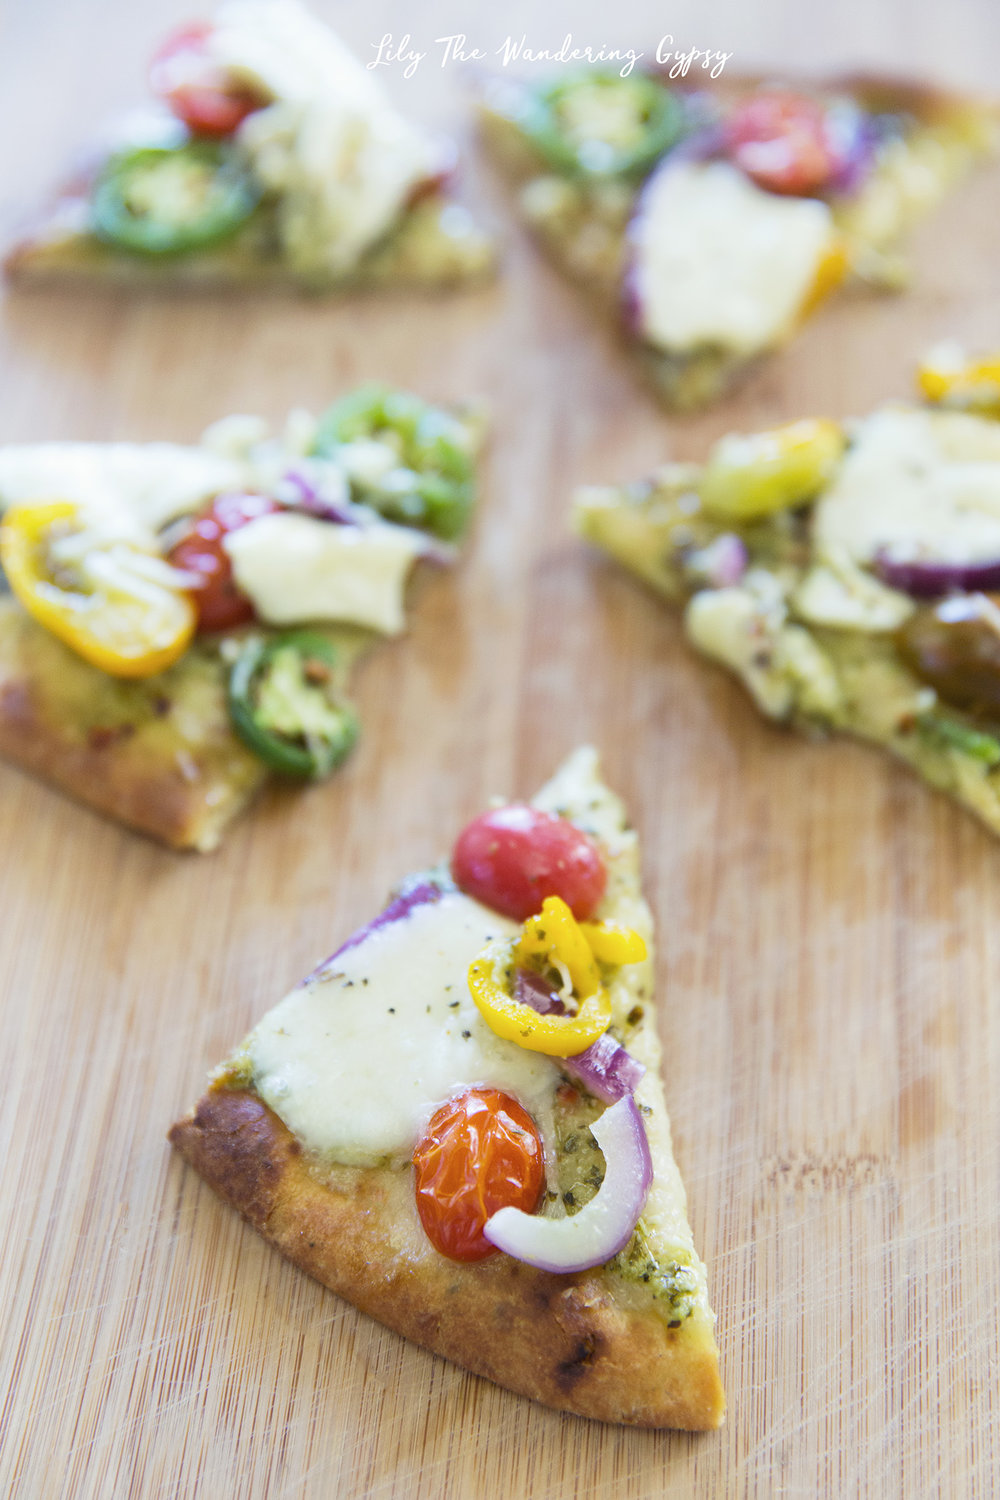 #ElevateYourPlate with this Vegetarian Flatbread Pizza Recipe